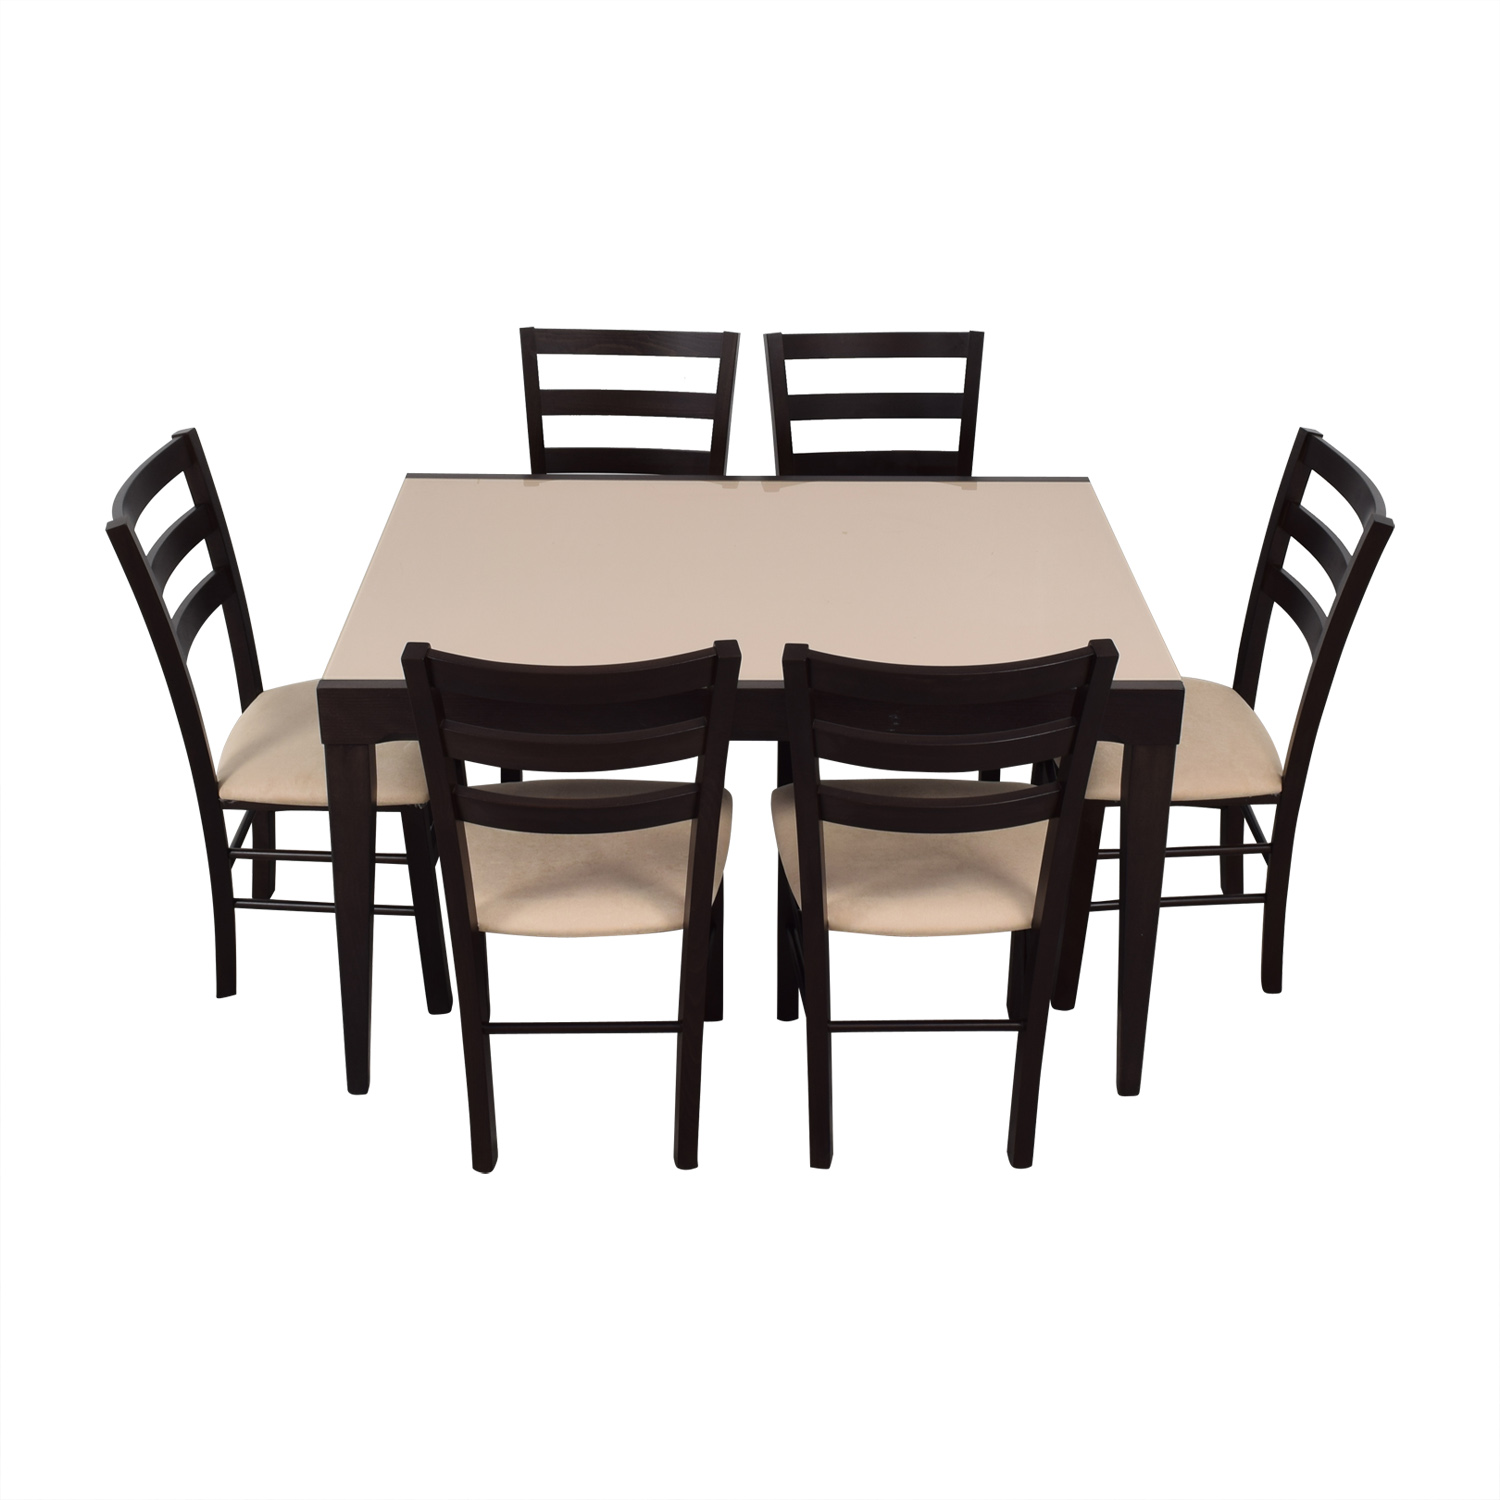 buy Calligaris Calligaris Extendable Dining Set online